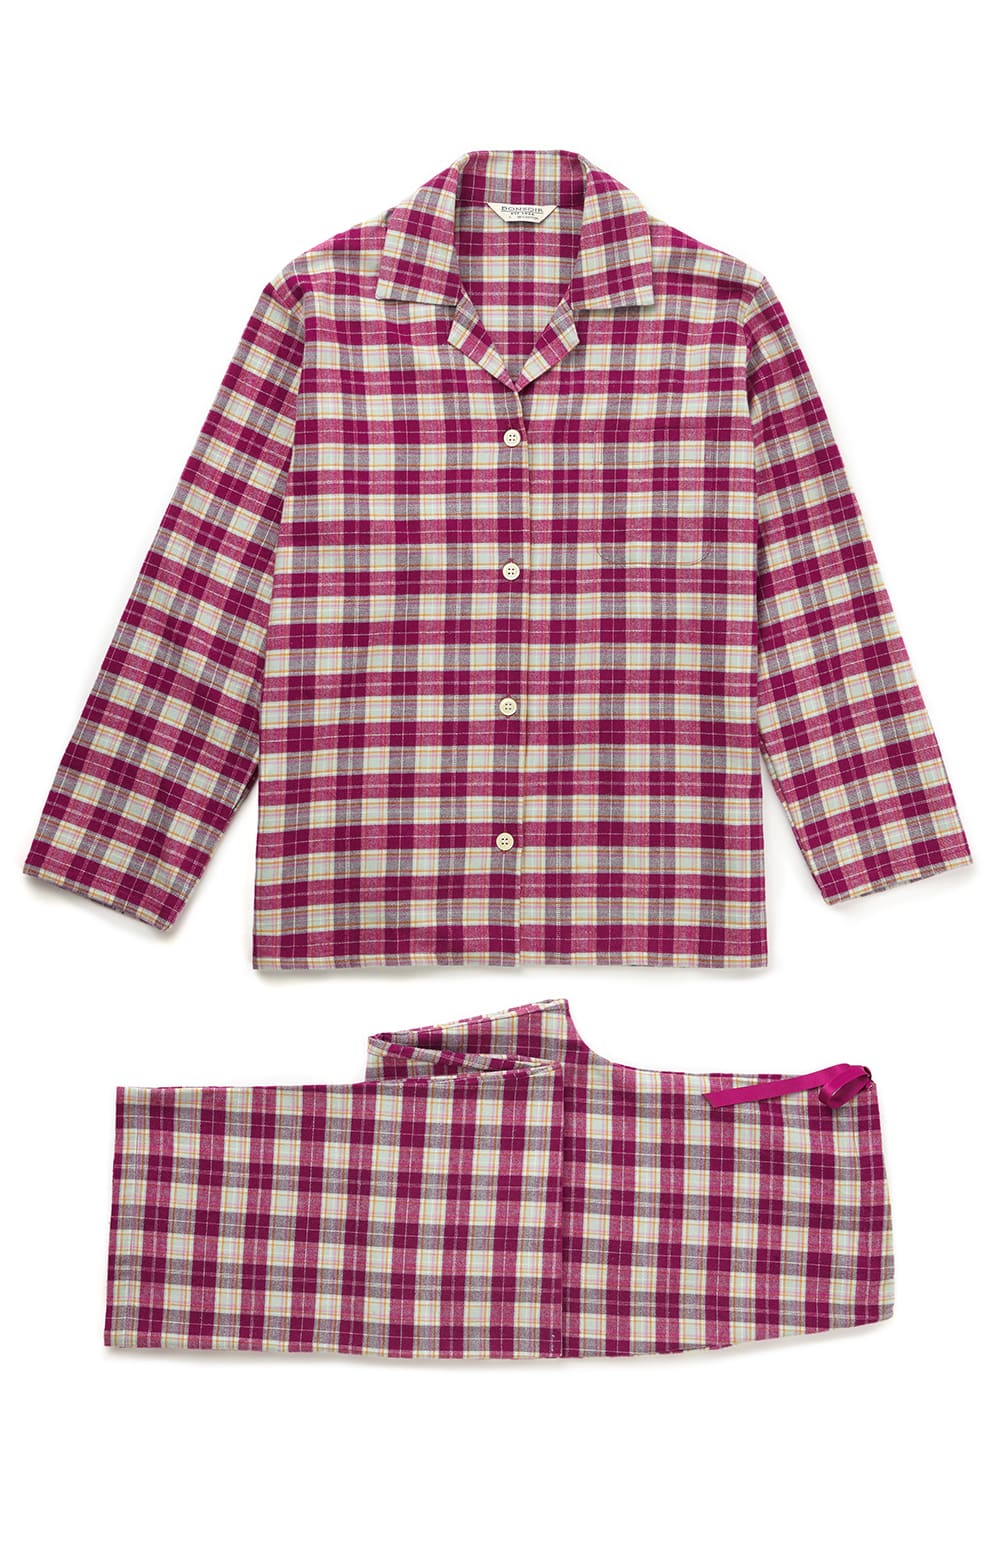 Brushed Cotton Melbury Pyjamas | Bonsoir of London